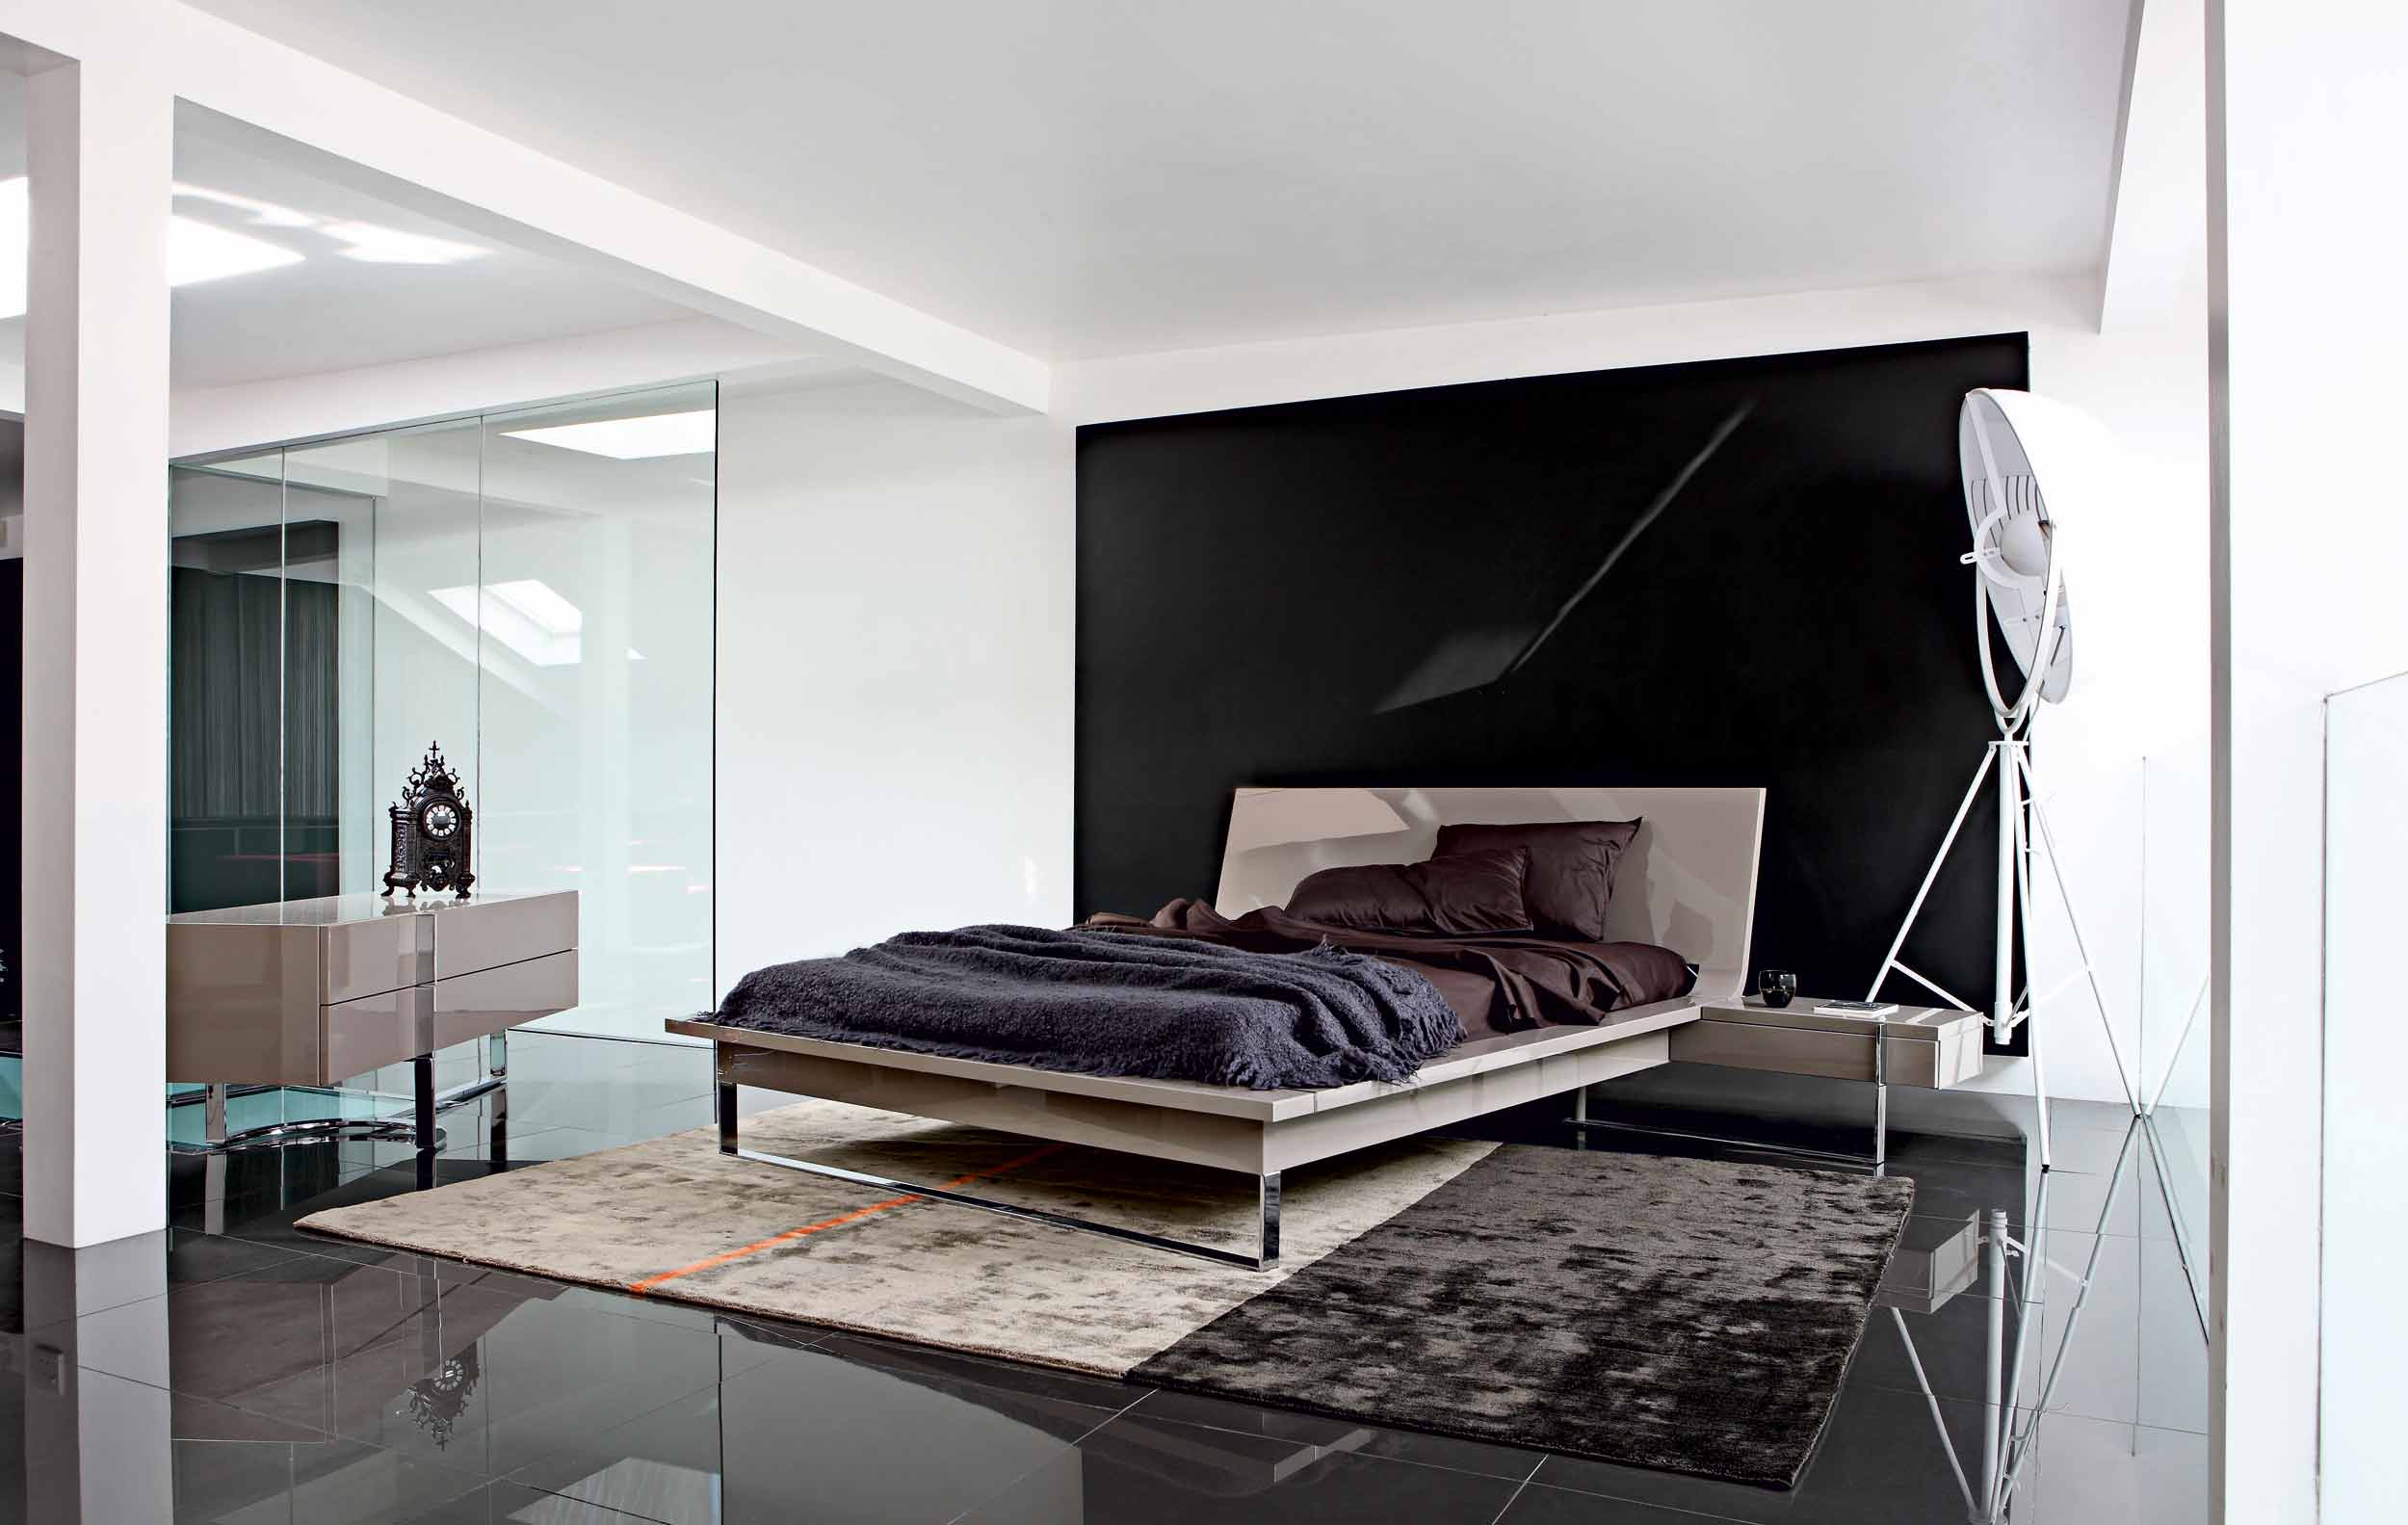 Minimalist bedroom | Interior Design Ideas. on Minimalist Modern Simple Bedroom Design  id=12544